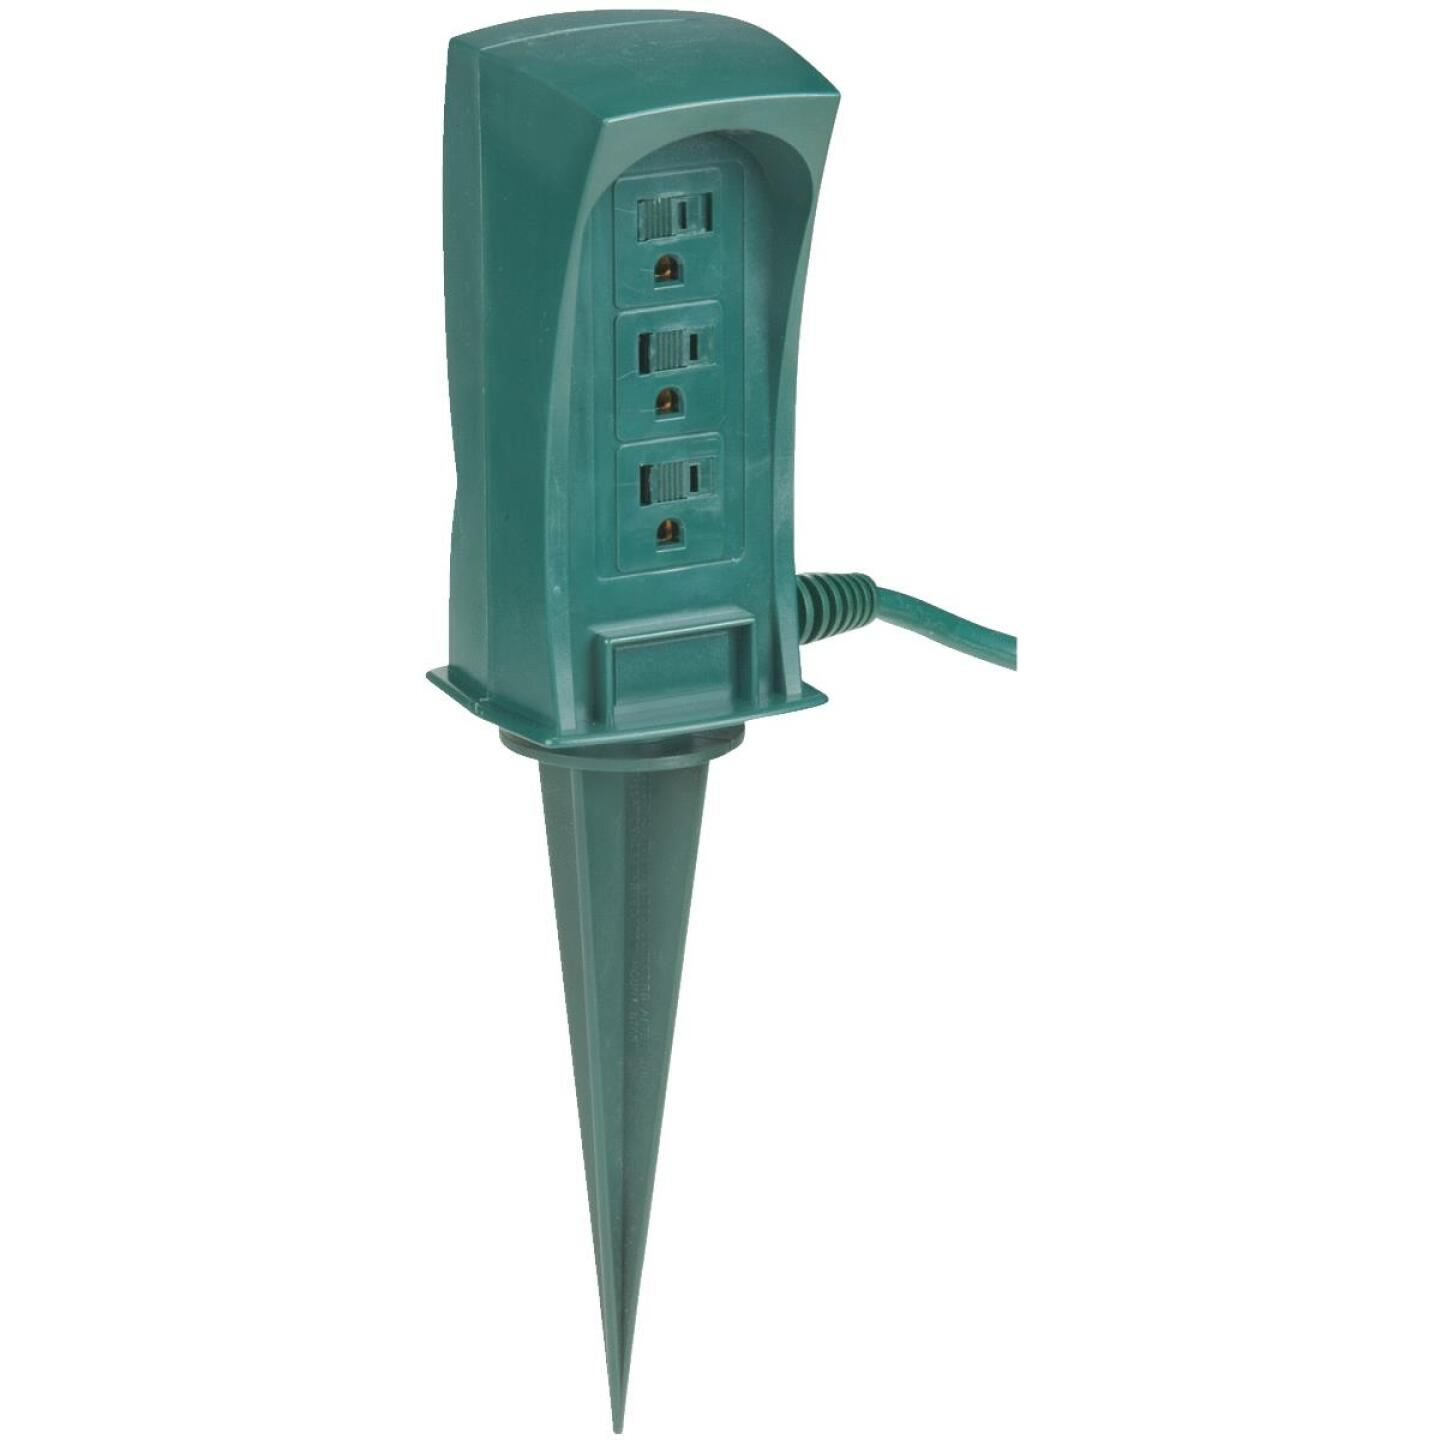 Do it 3-Outlet 13A Outdoor Power Stake with 6 Ft. Cord Image 1